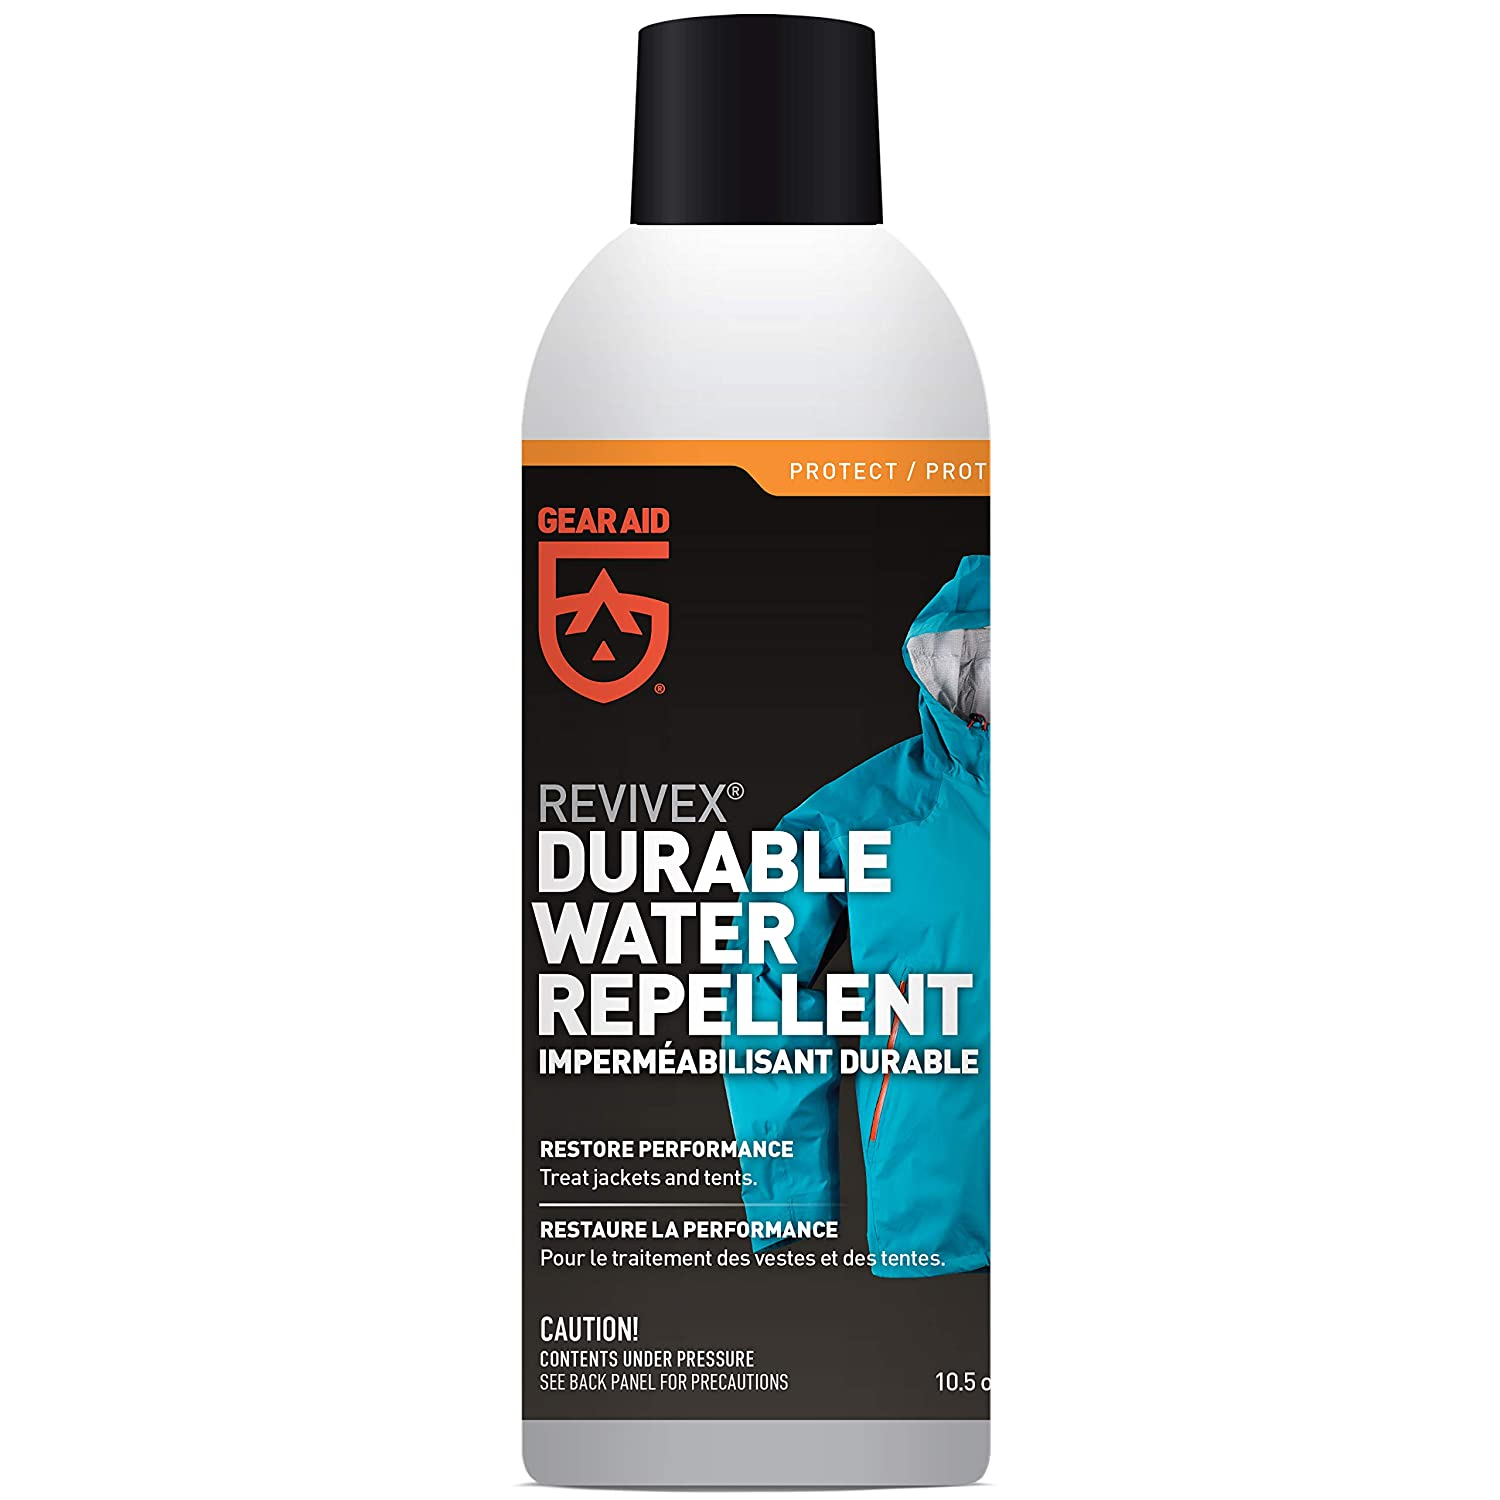 f1bdfa2fc Gear Aid Revivex Durable Water Repellent (DWR) Spray for Reproofing Jackets